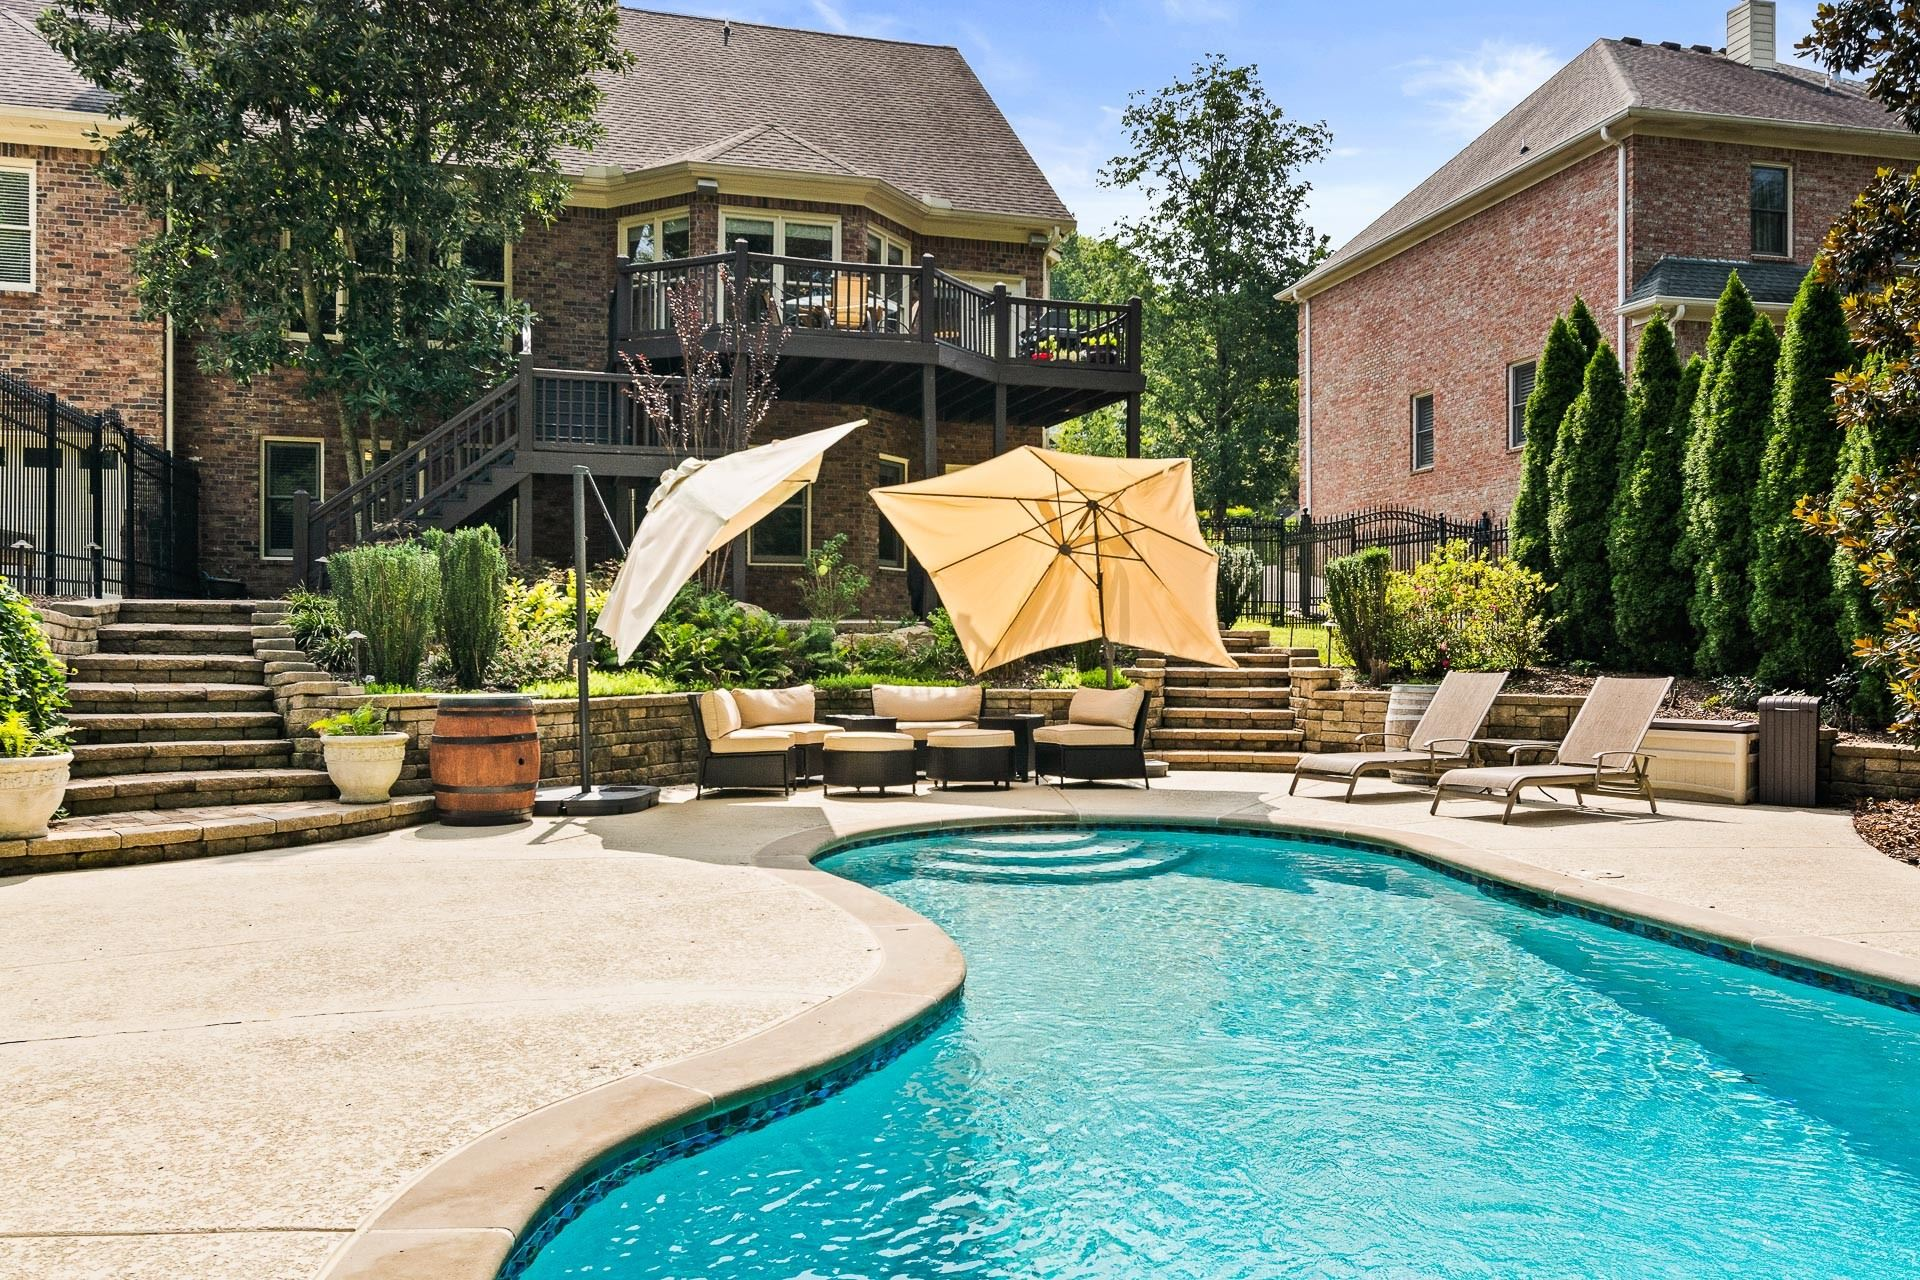 Photo of 309 Chalford Ct, Franklin, TN 37069 (MLS # 2189745)